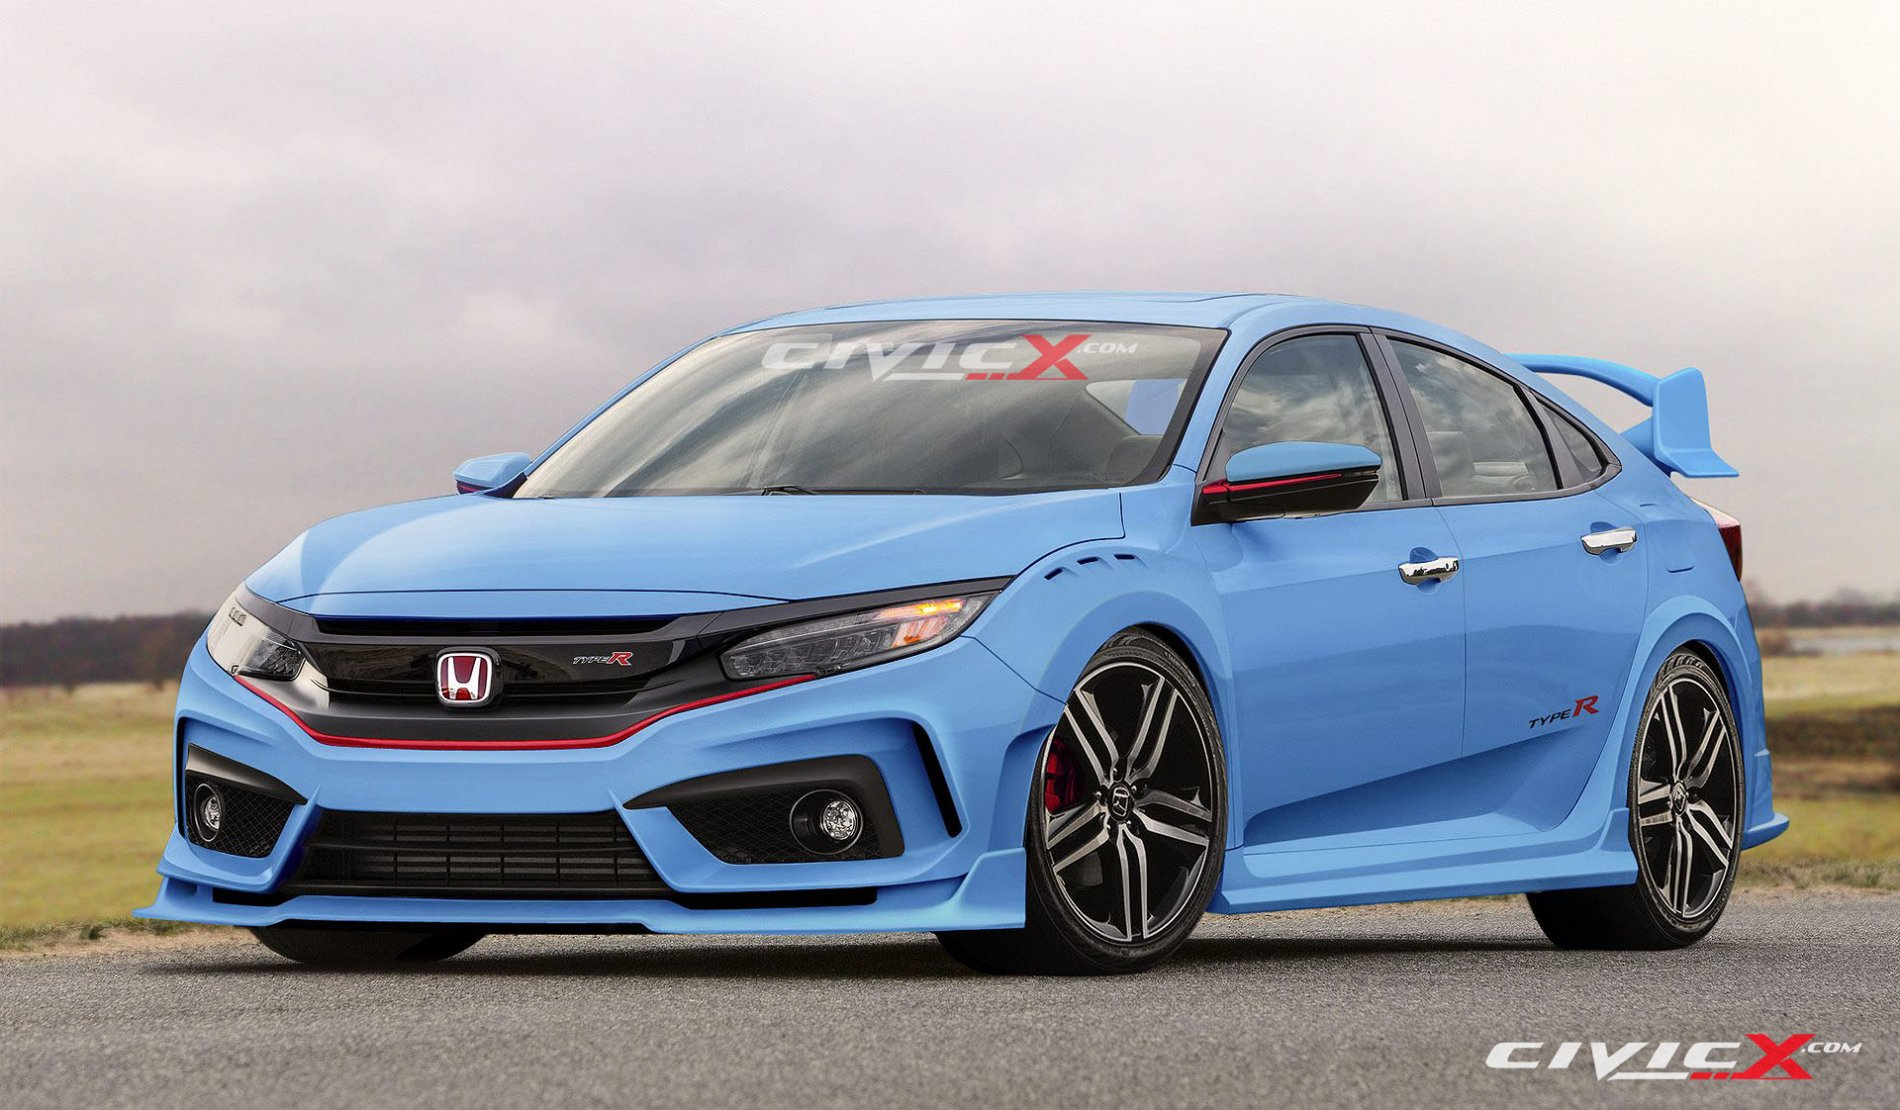 2017 honda civic type r looks ready to summon satan in